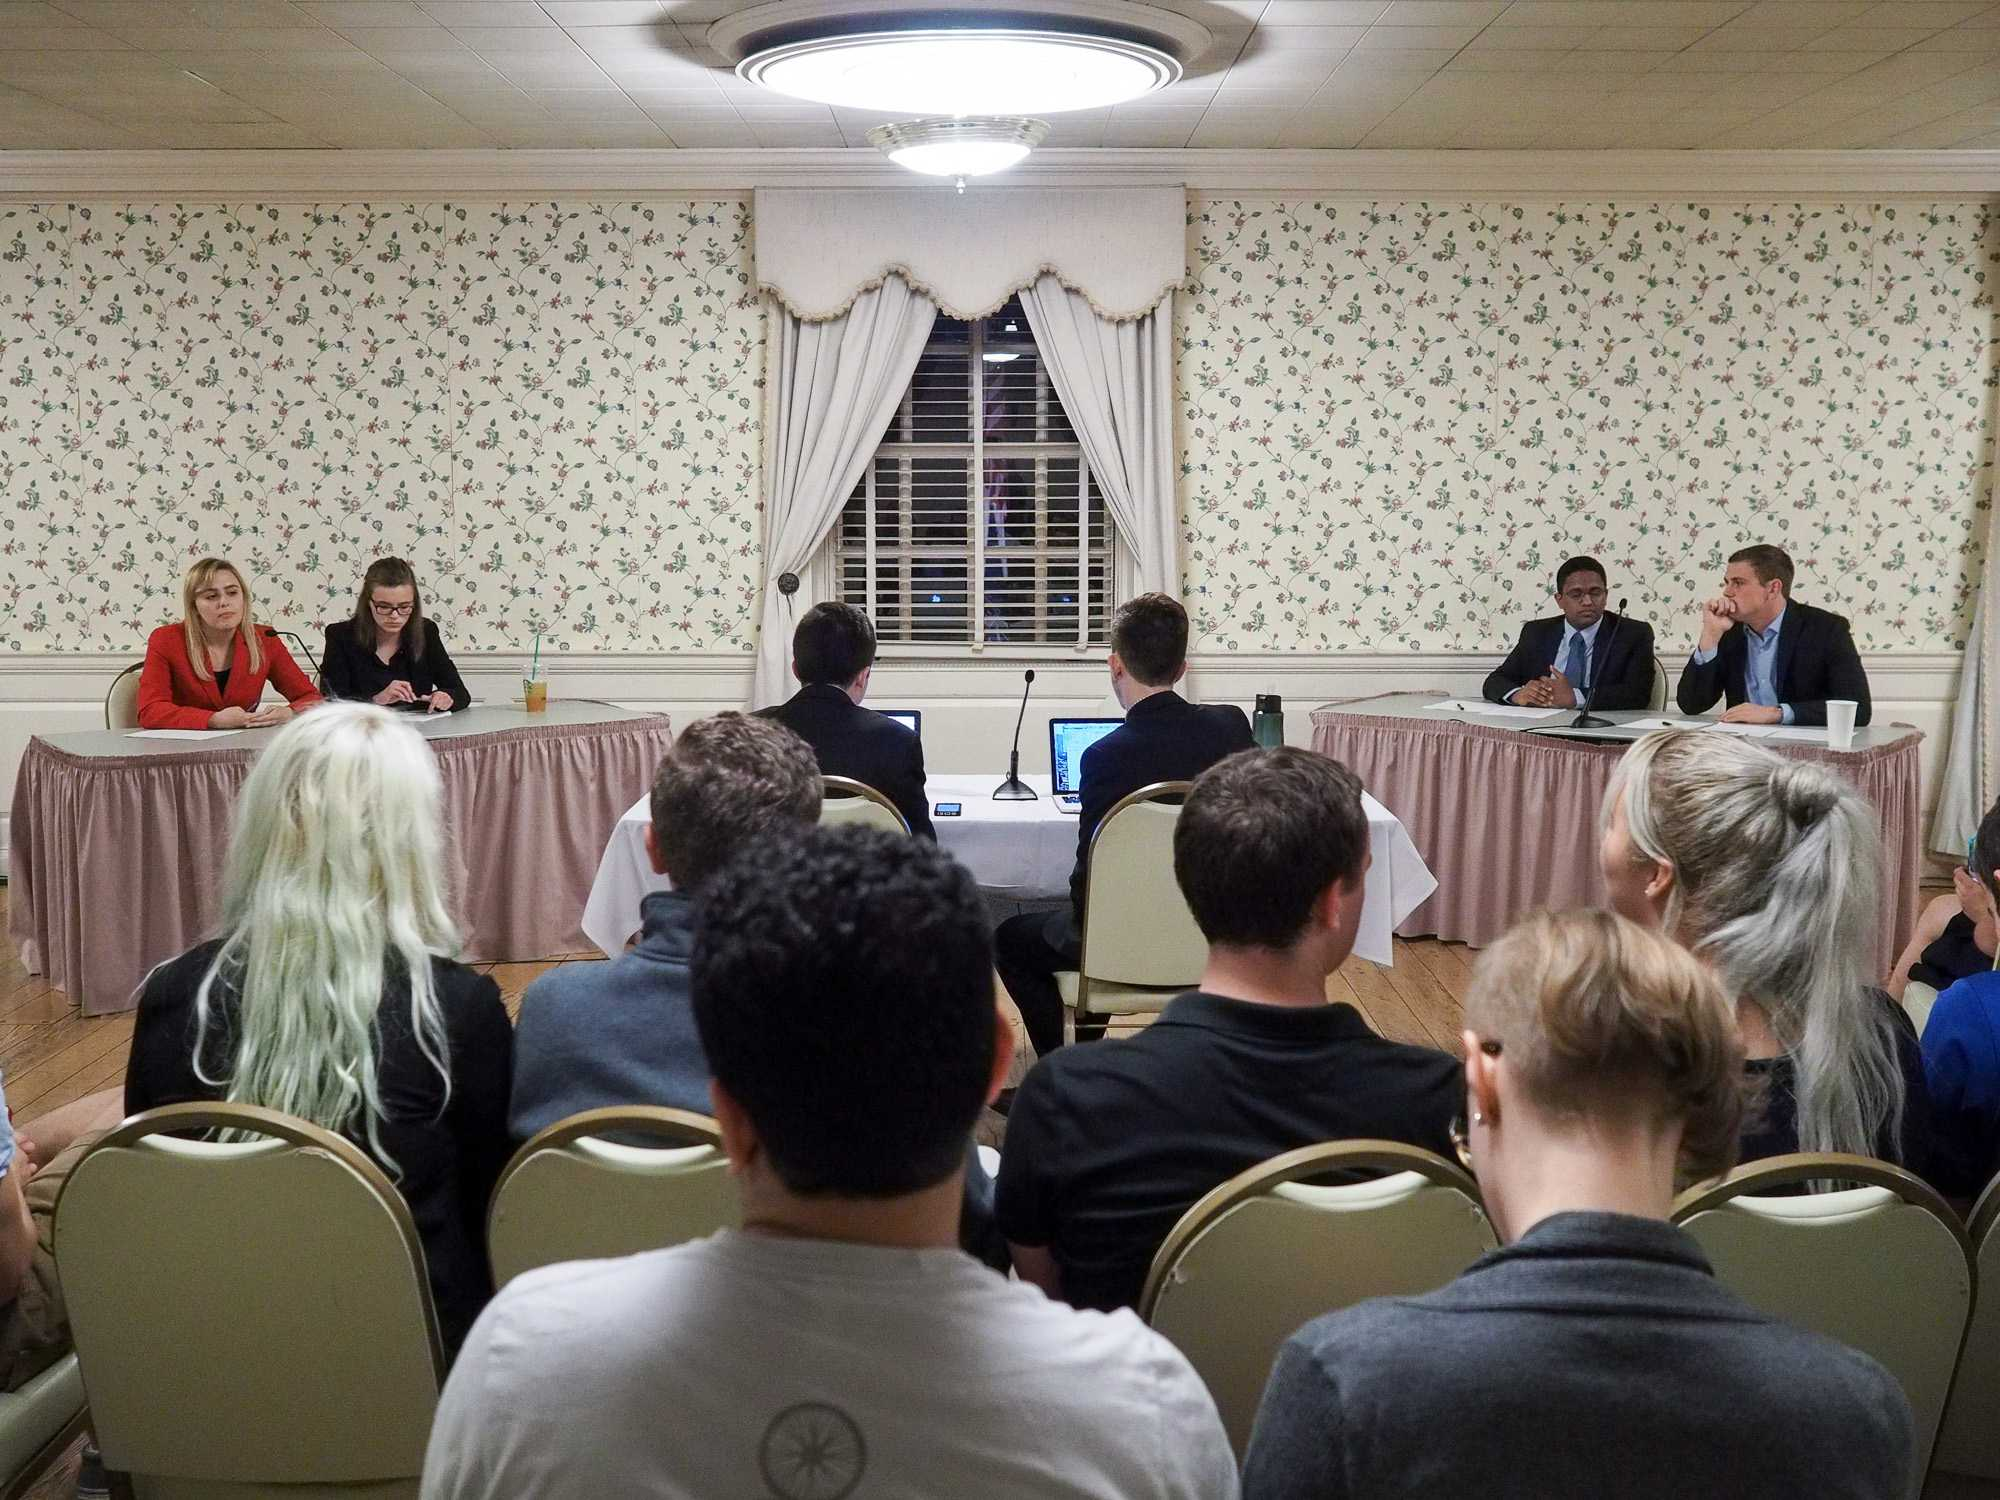 Illini Student Senate members hold Republican-Democratic debate in the Union. October 6, 2016.